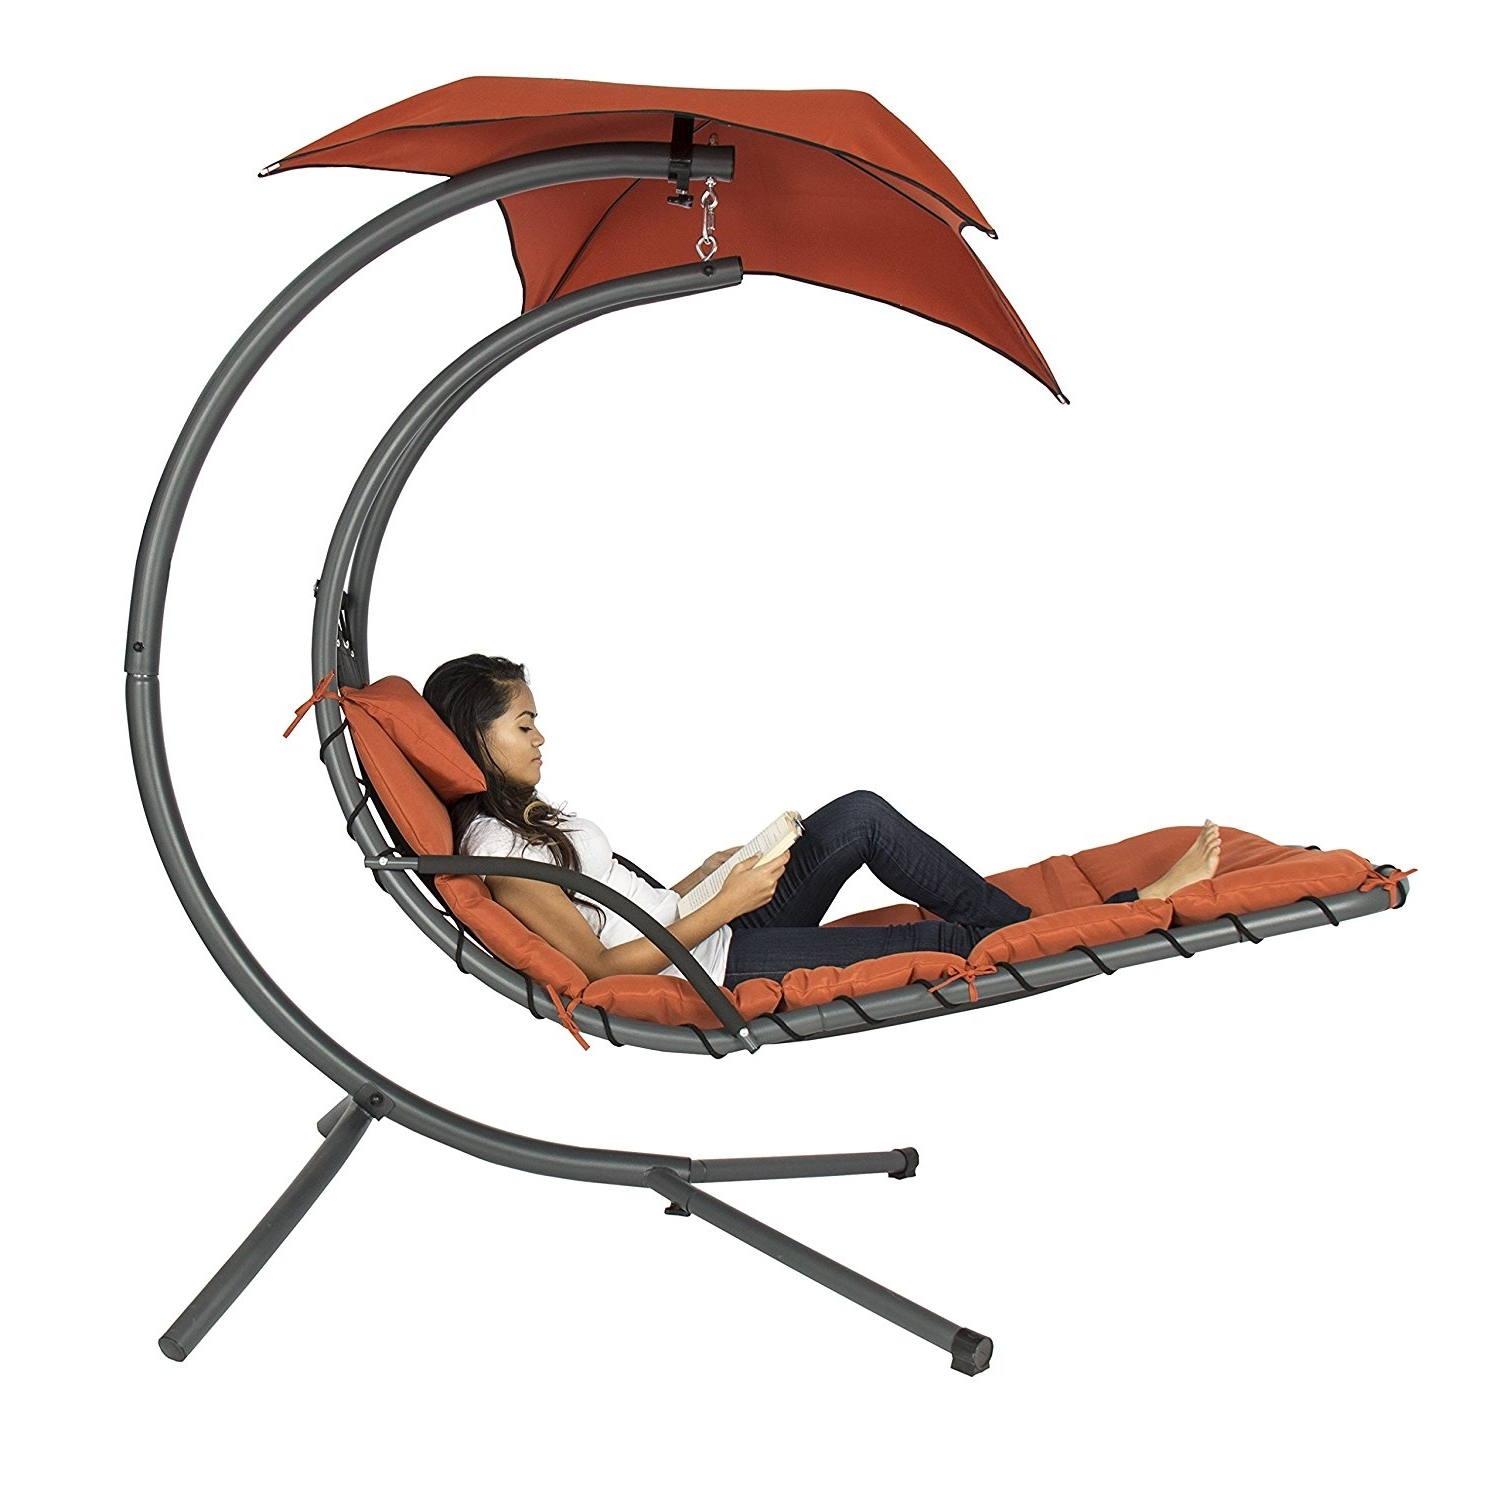 Most Recent Chaise Lounge Swing Chairs Inside Amazon: Best Choice Products Hanging Chaise Lounger Chair Arc (View 9 of 15)